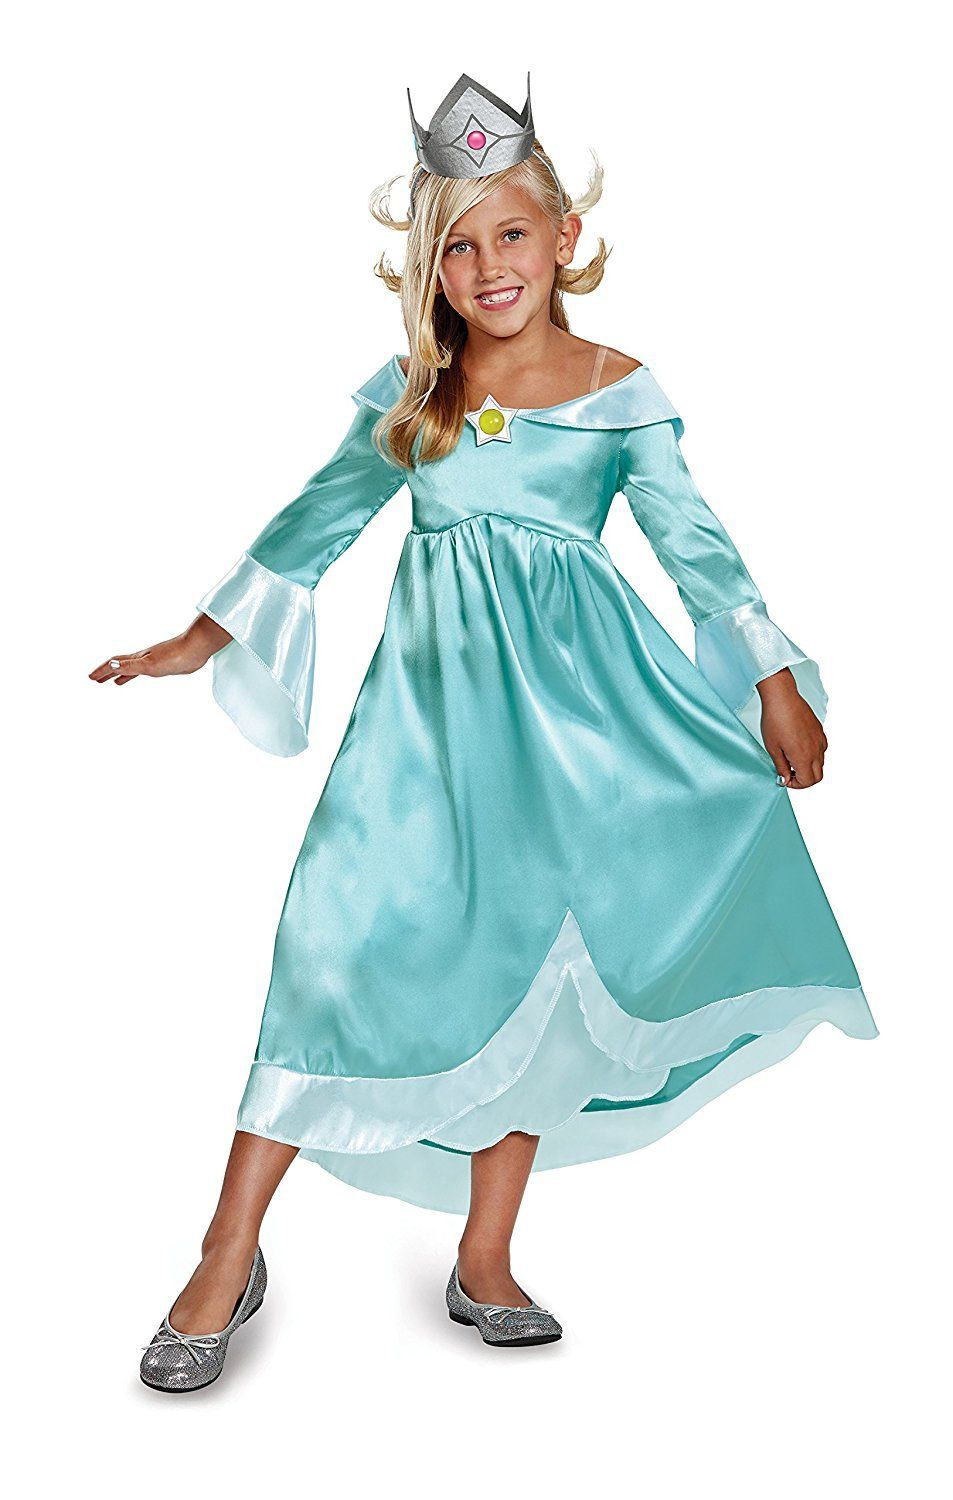 rosalina nintendo super mario bros. child halloween costume